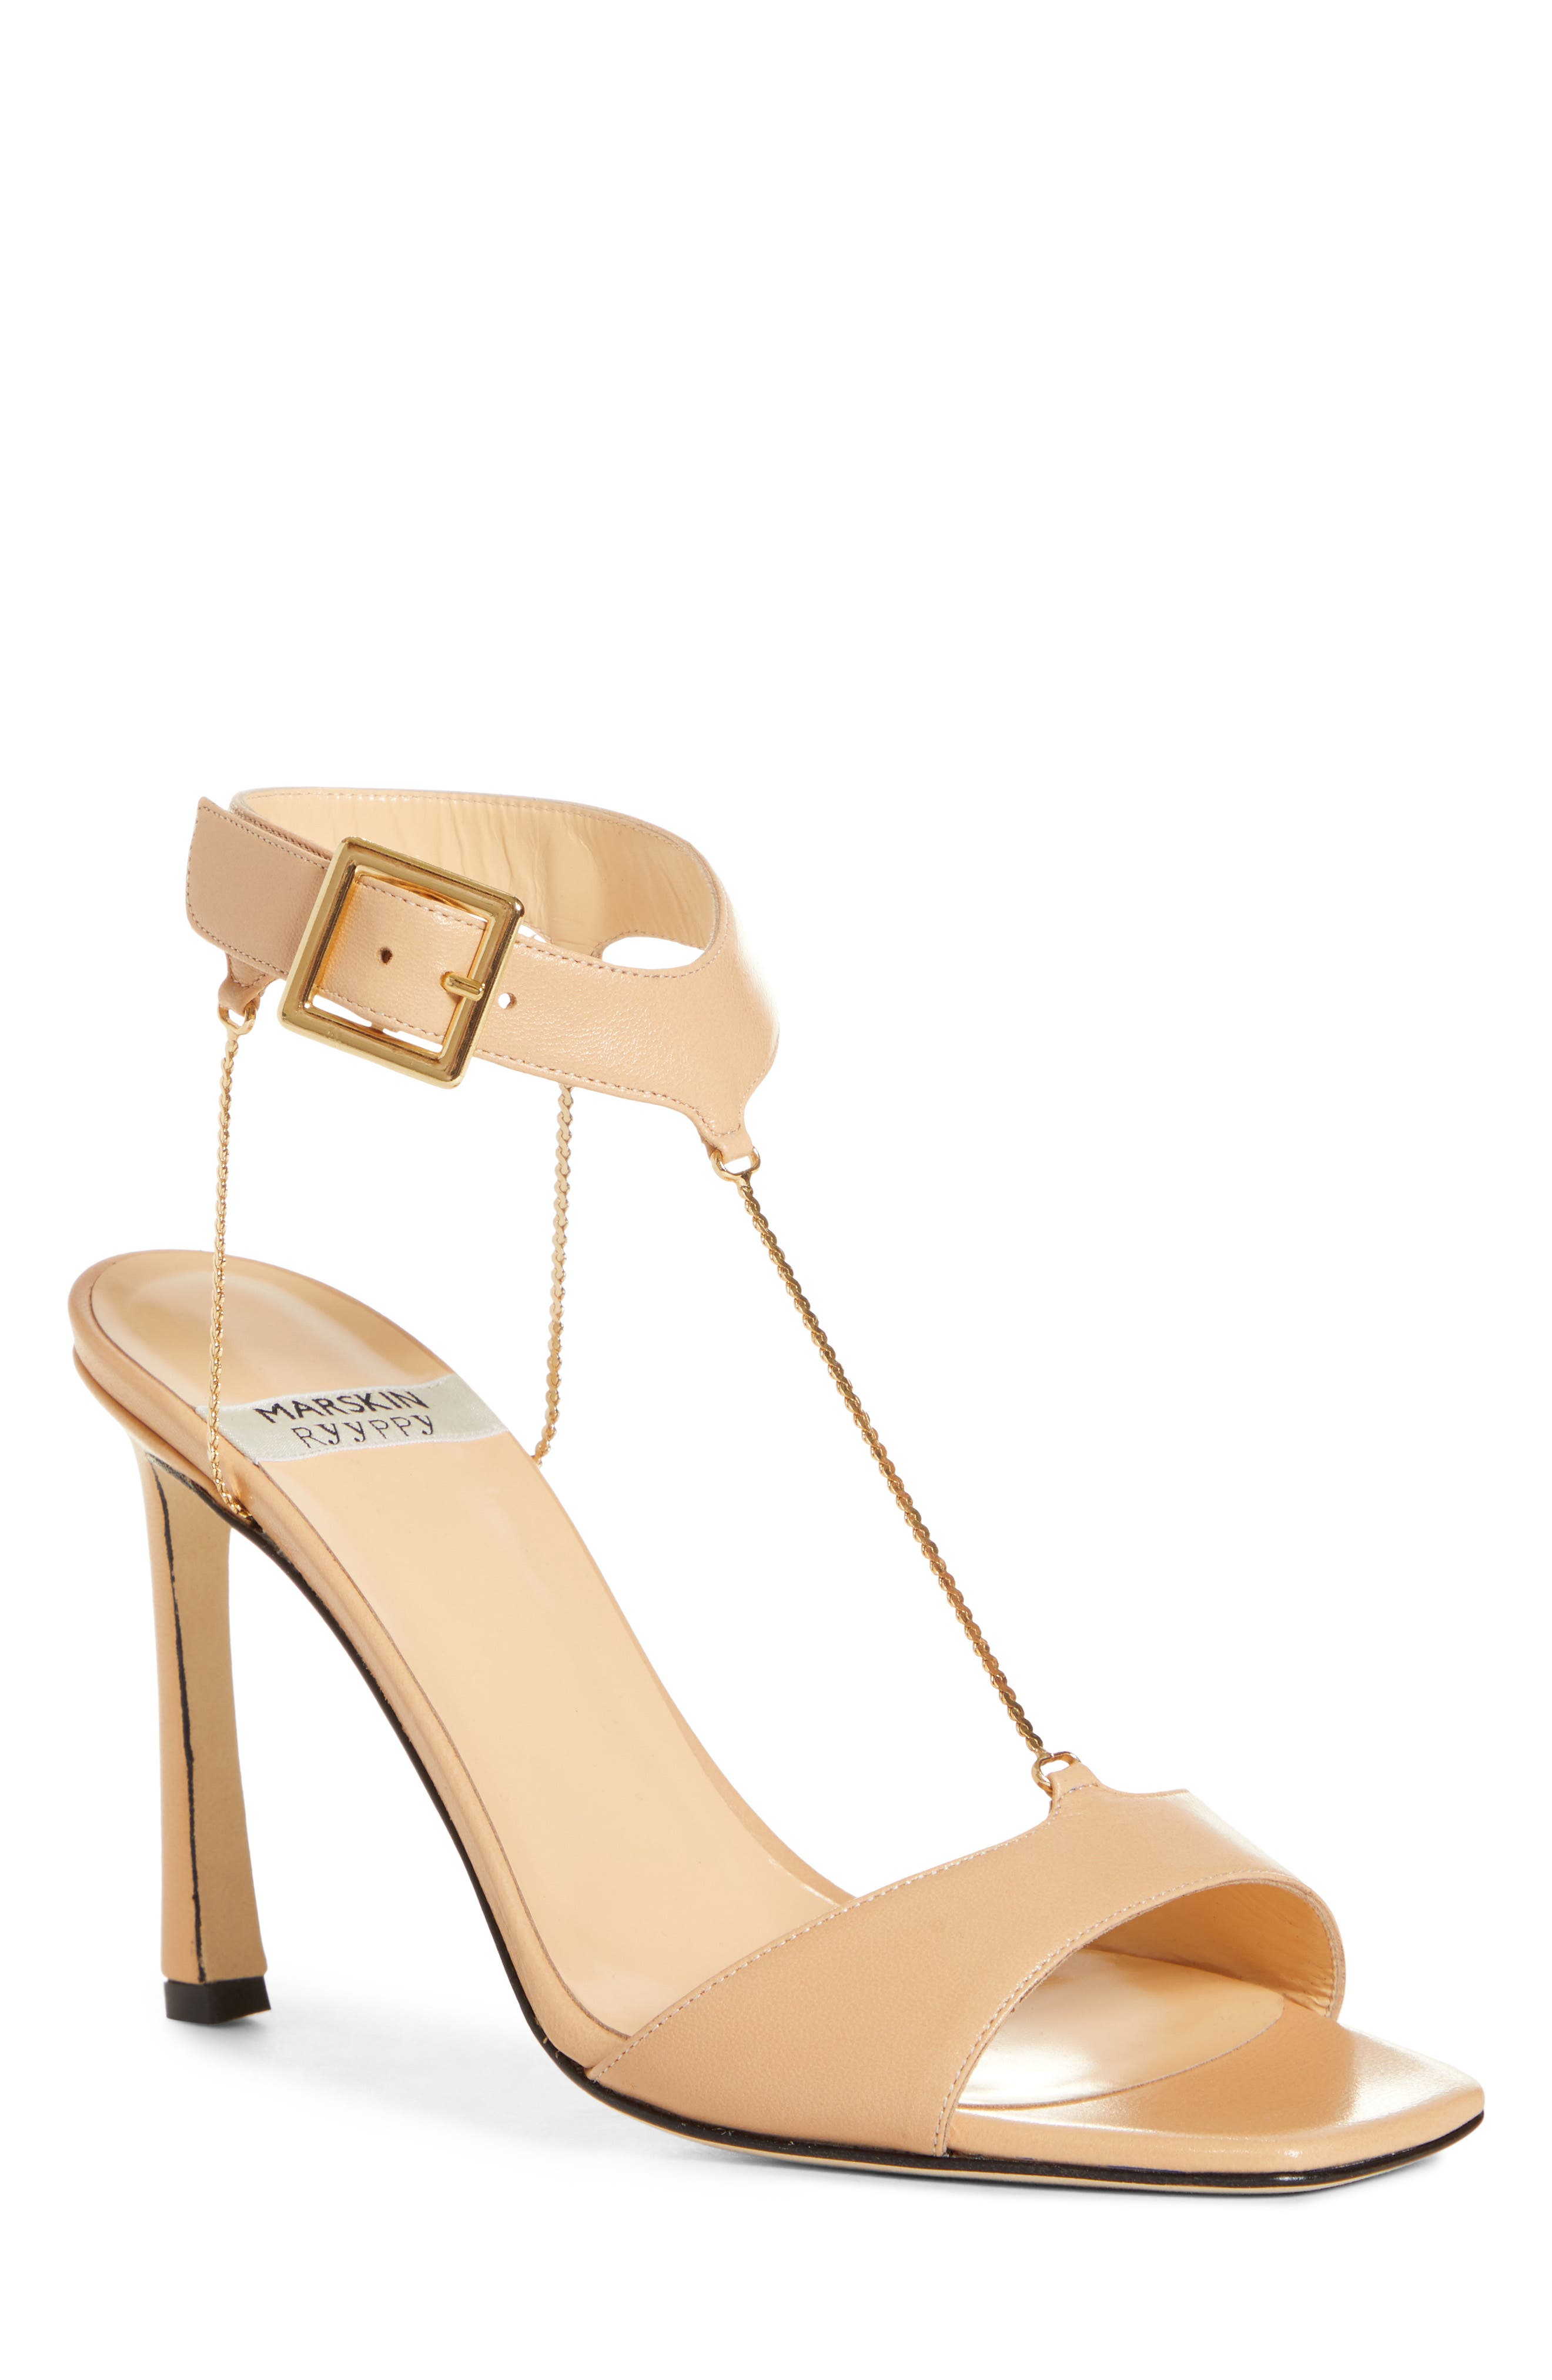 MARSKINRYYPPY, Ember Sandal, Main thumbnail 1, color, NUDE LEATHER 449